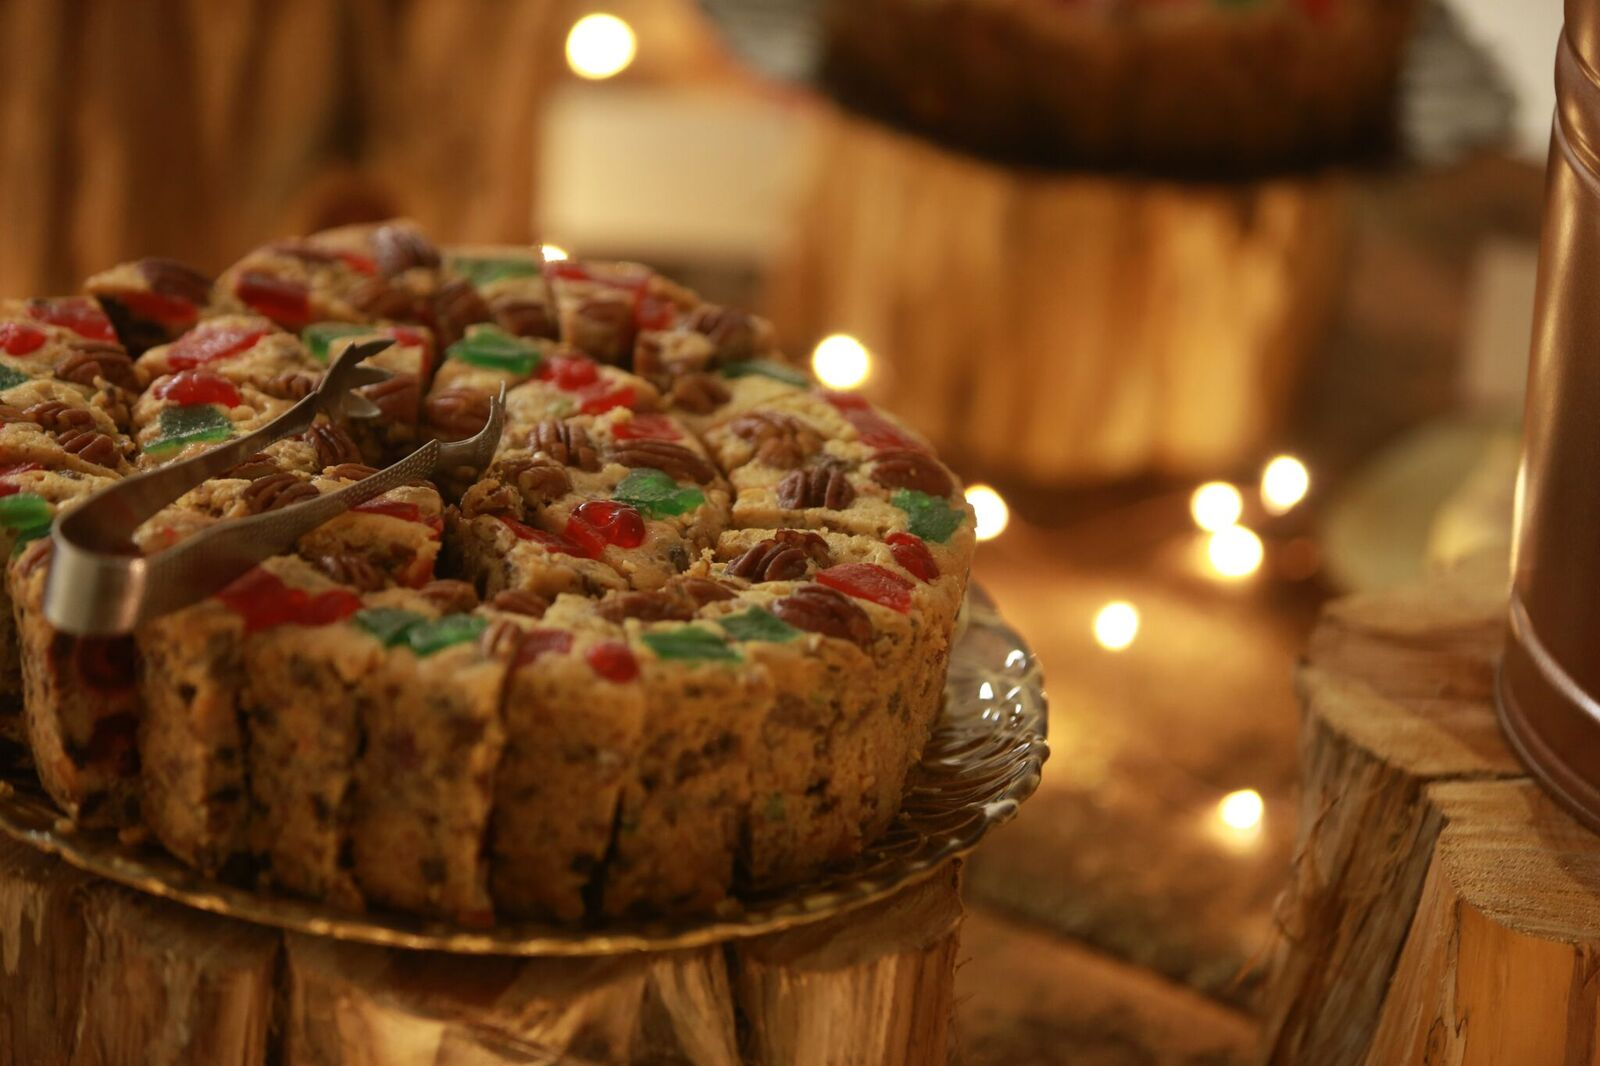 Grab some famous fruitcake made by students attending the College of the Ozarks.